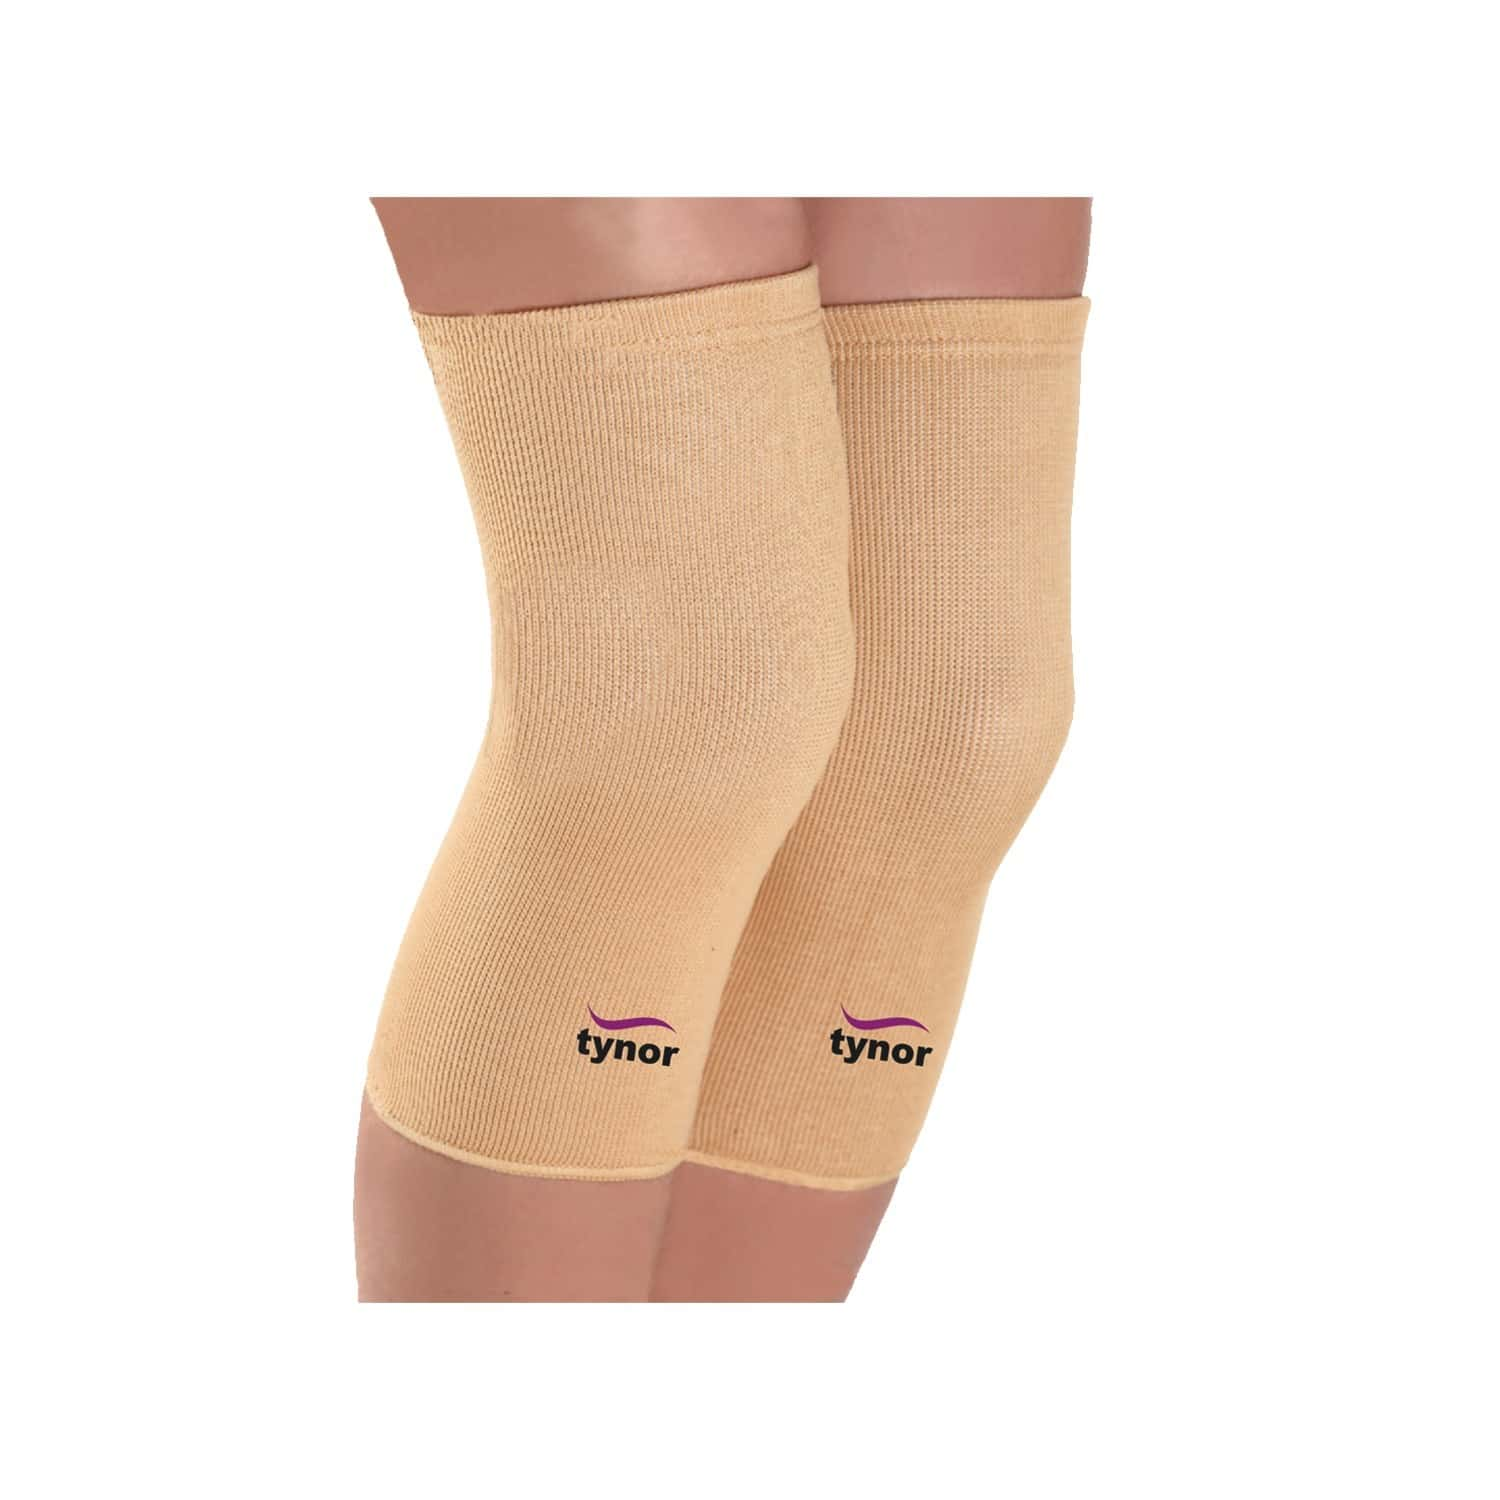 Tynor Knee Cap Pair ( Relieves Pain, Support, Uniform Compression) - Small